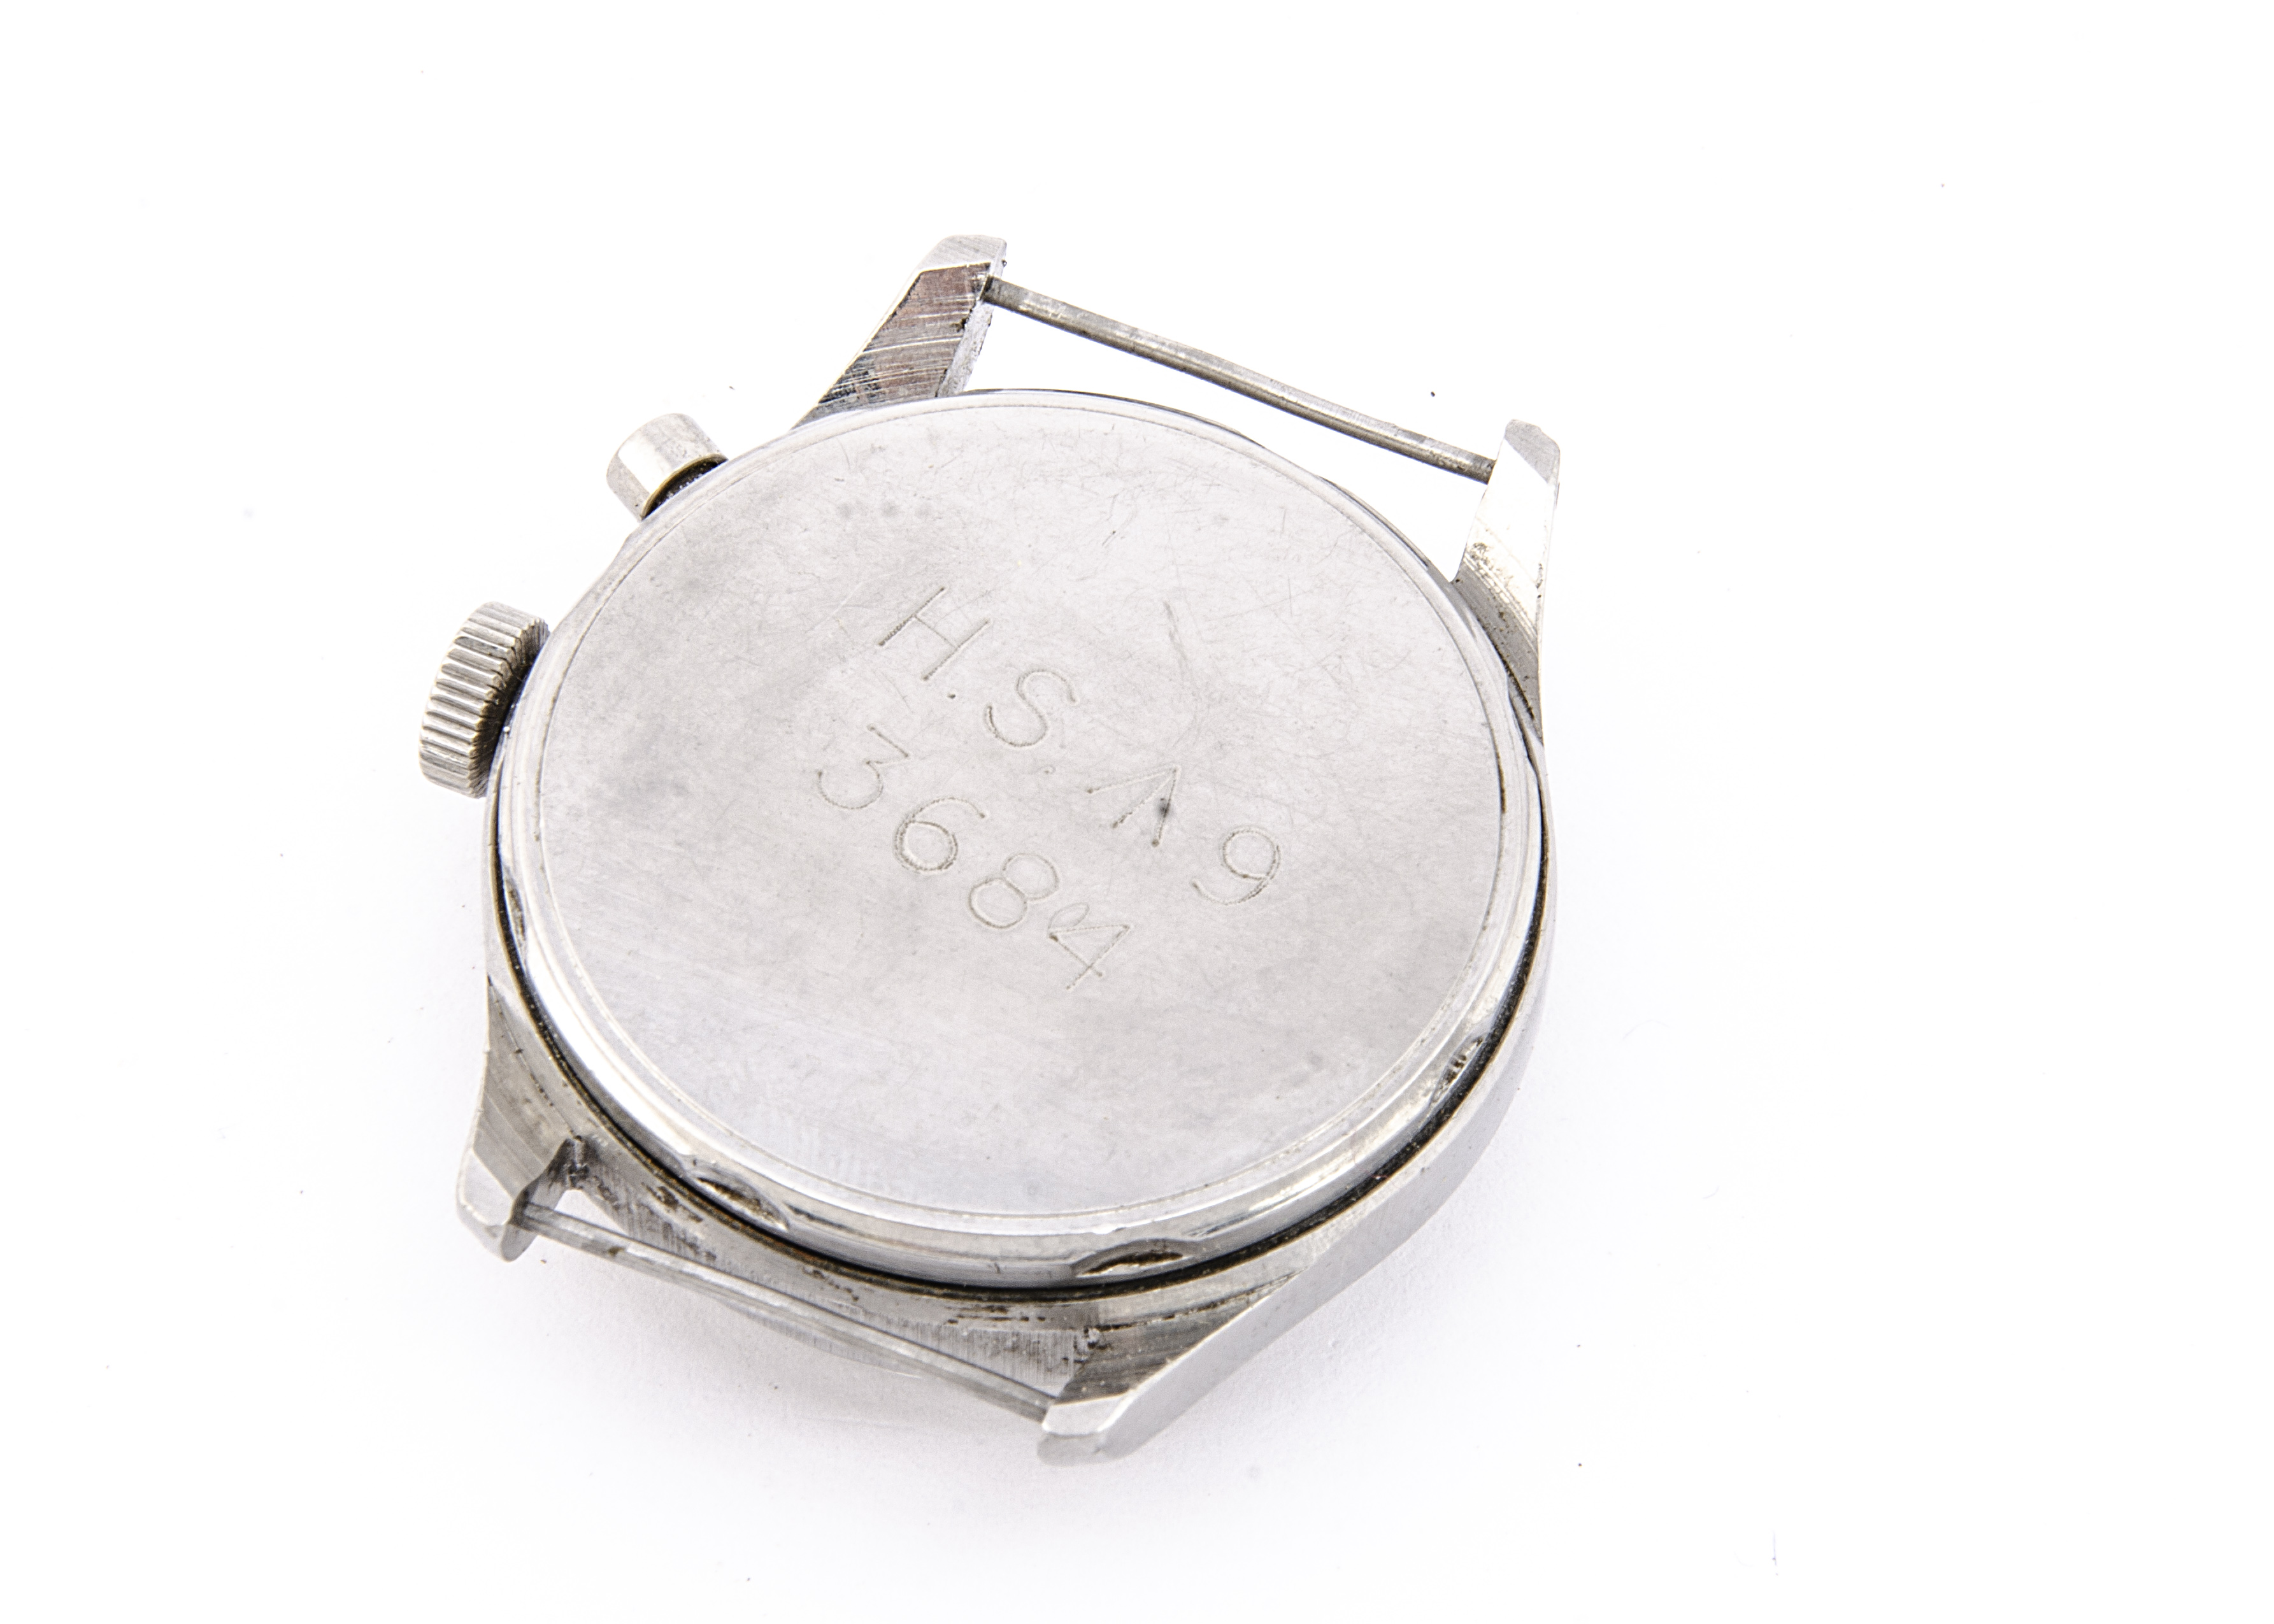 A c1950/60s Lemania Royal Navy / FAA single button chronograph stainless steel wristwatch, 37mm - Image 4 of 4